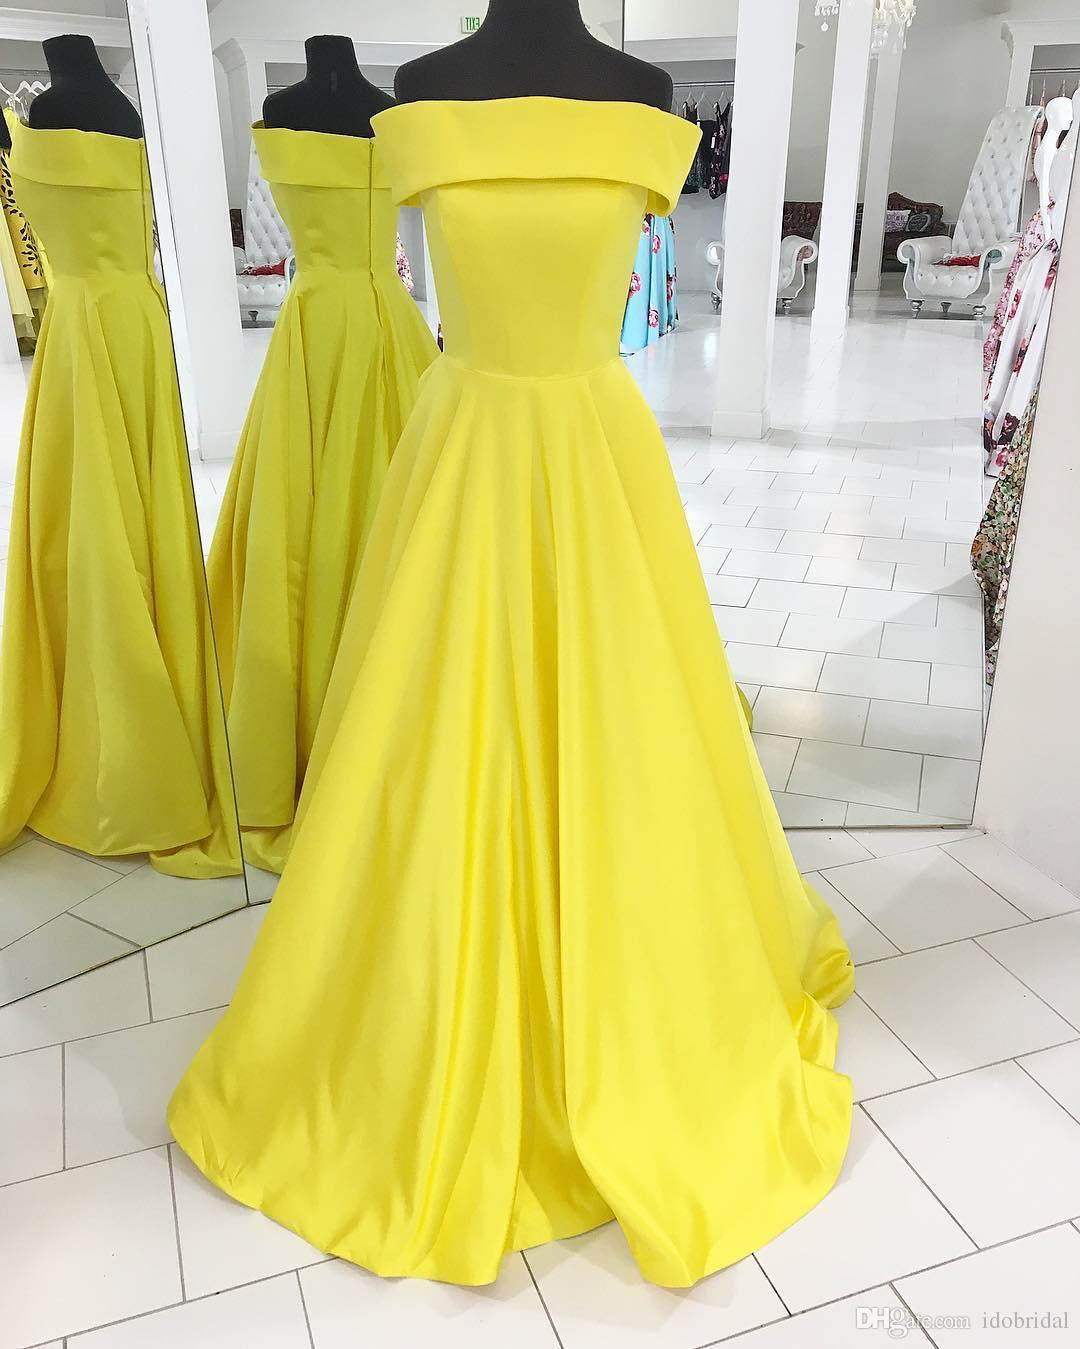 ec4cb3980f9 Off the Shoulder Long Prom Dresses Yellow Simple A Line Evening Dresses  With Ruffles Zipper Back Design Formal Gown for Women